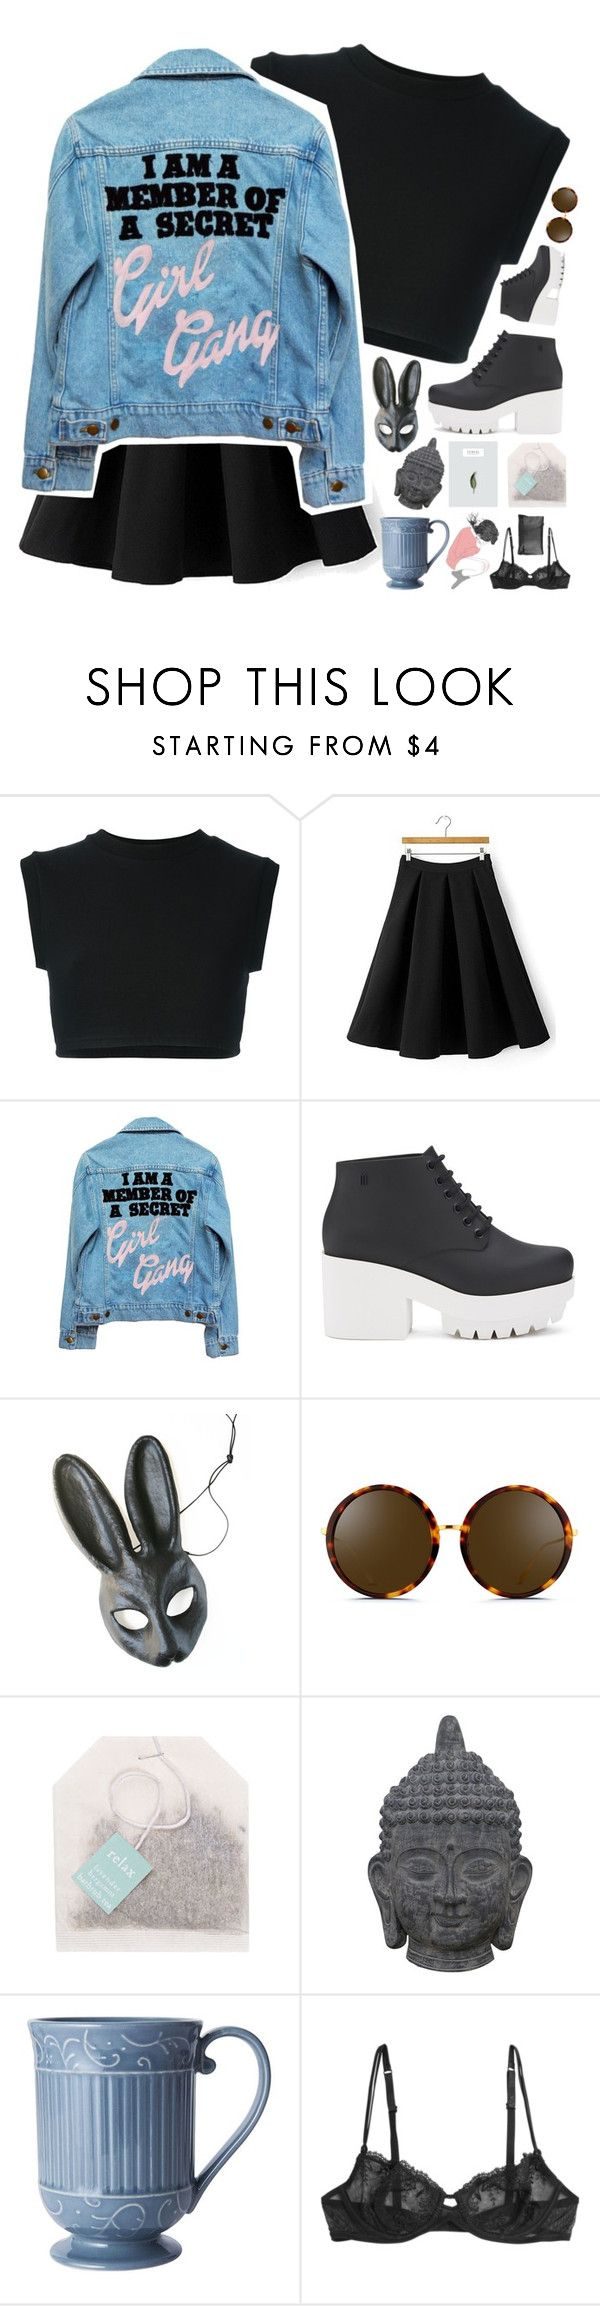 """Denim Don't // Day 6/100"" by rockgirlfriend15 ❤ liked on Polyvore featuring adidas Originals, High Heels Suicide, Melissa, Linda Farrow, Three Hands, La Perla, Arlington Milne and c0smicxcrybabiies"